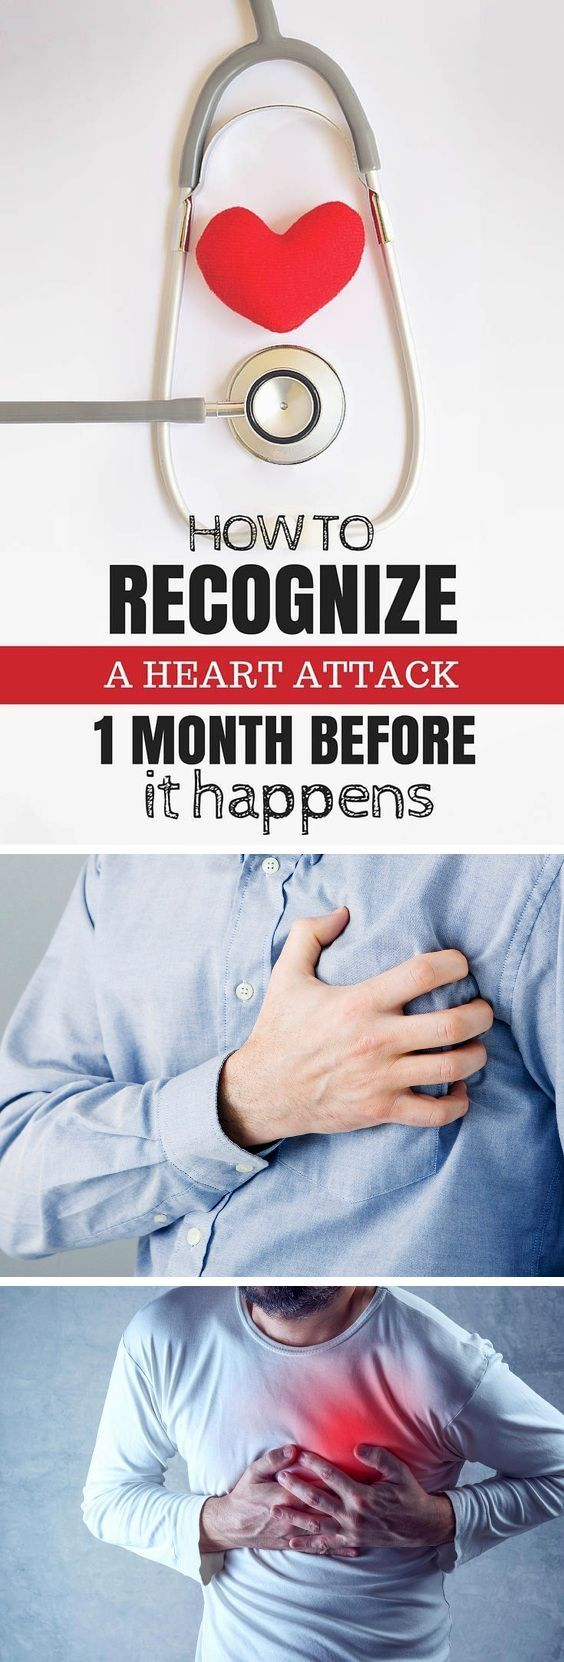 HOW TO RECOGNIZE A HEART ATTACK ONE MONTH BEFORE IT HAPPENS